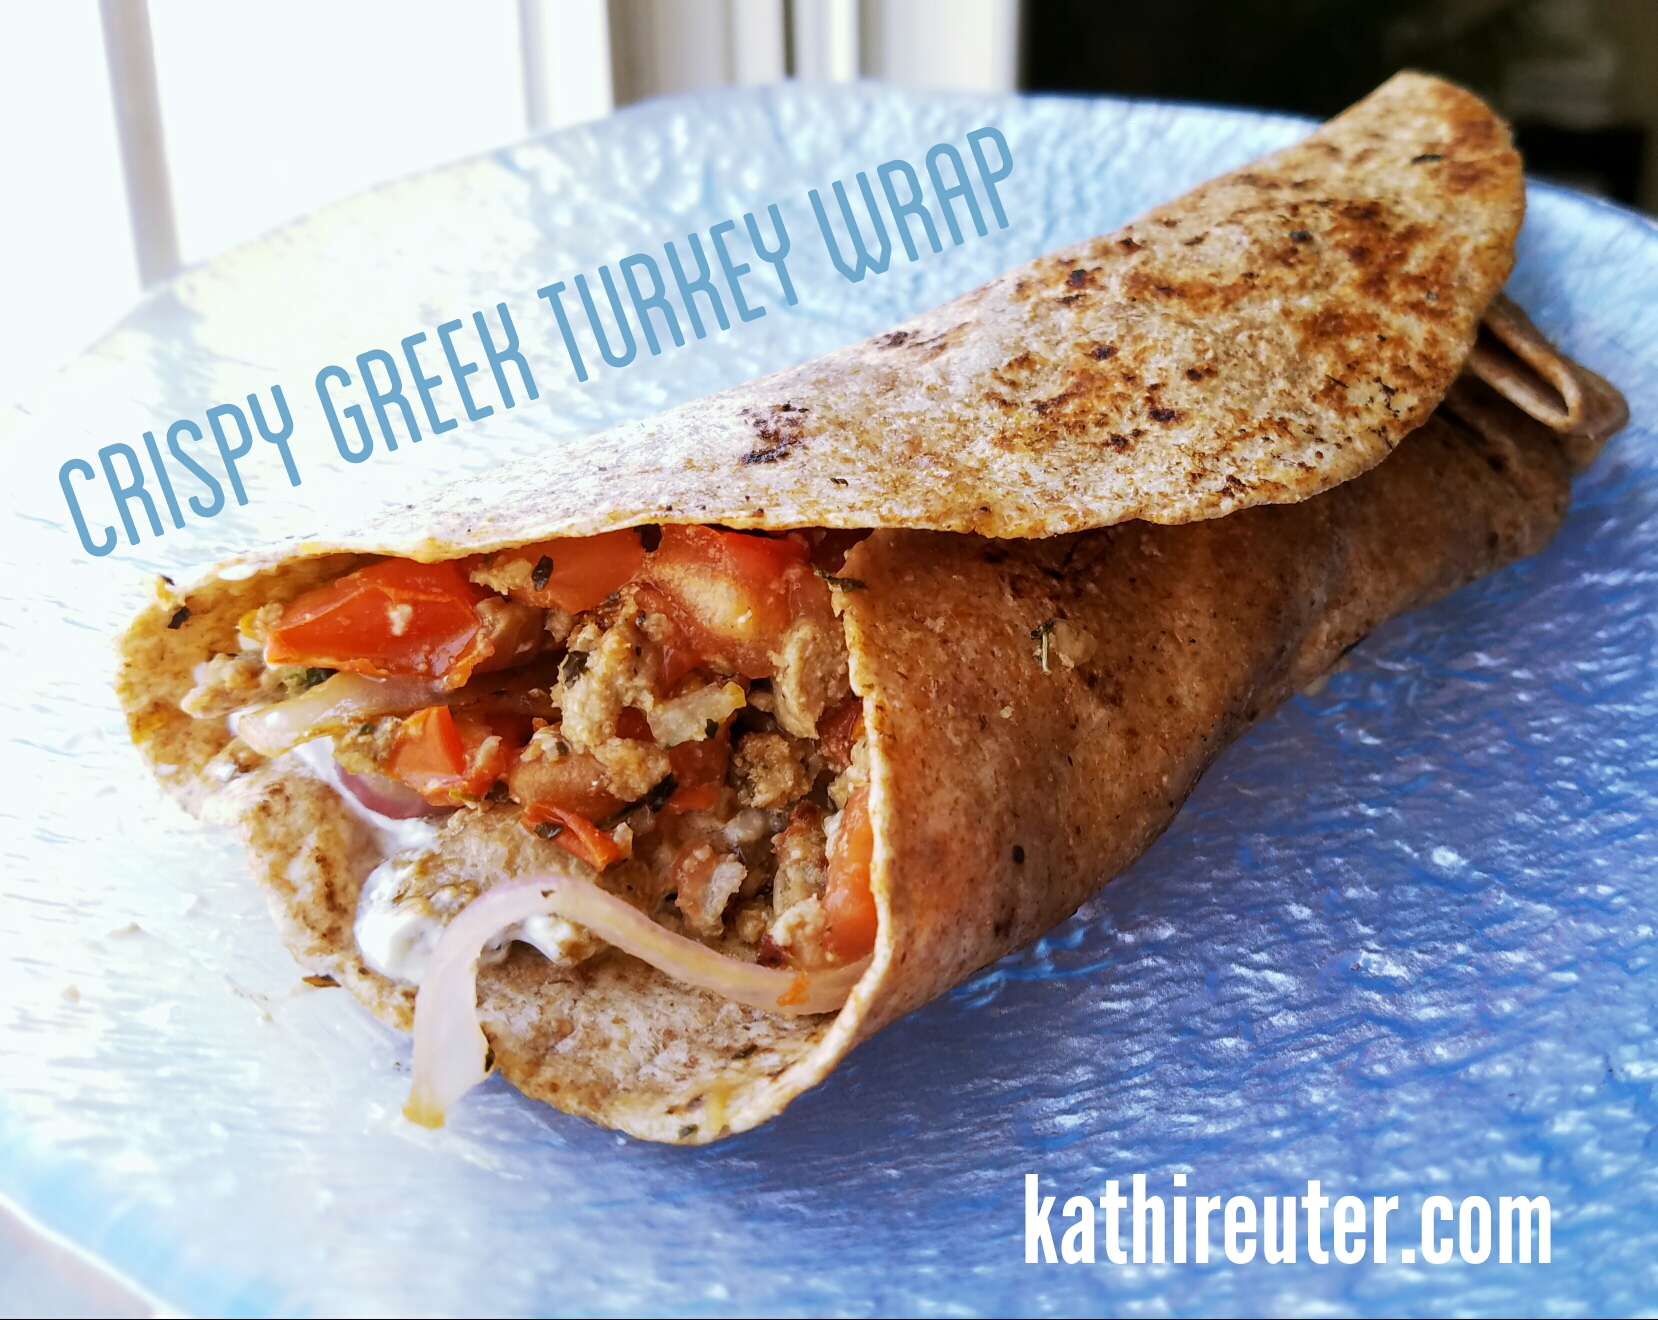 Crispy Greek Turkey Wrap | Clean Eating Recipes